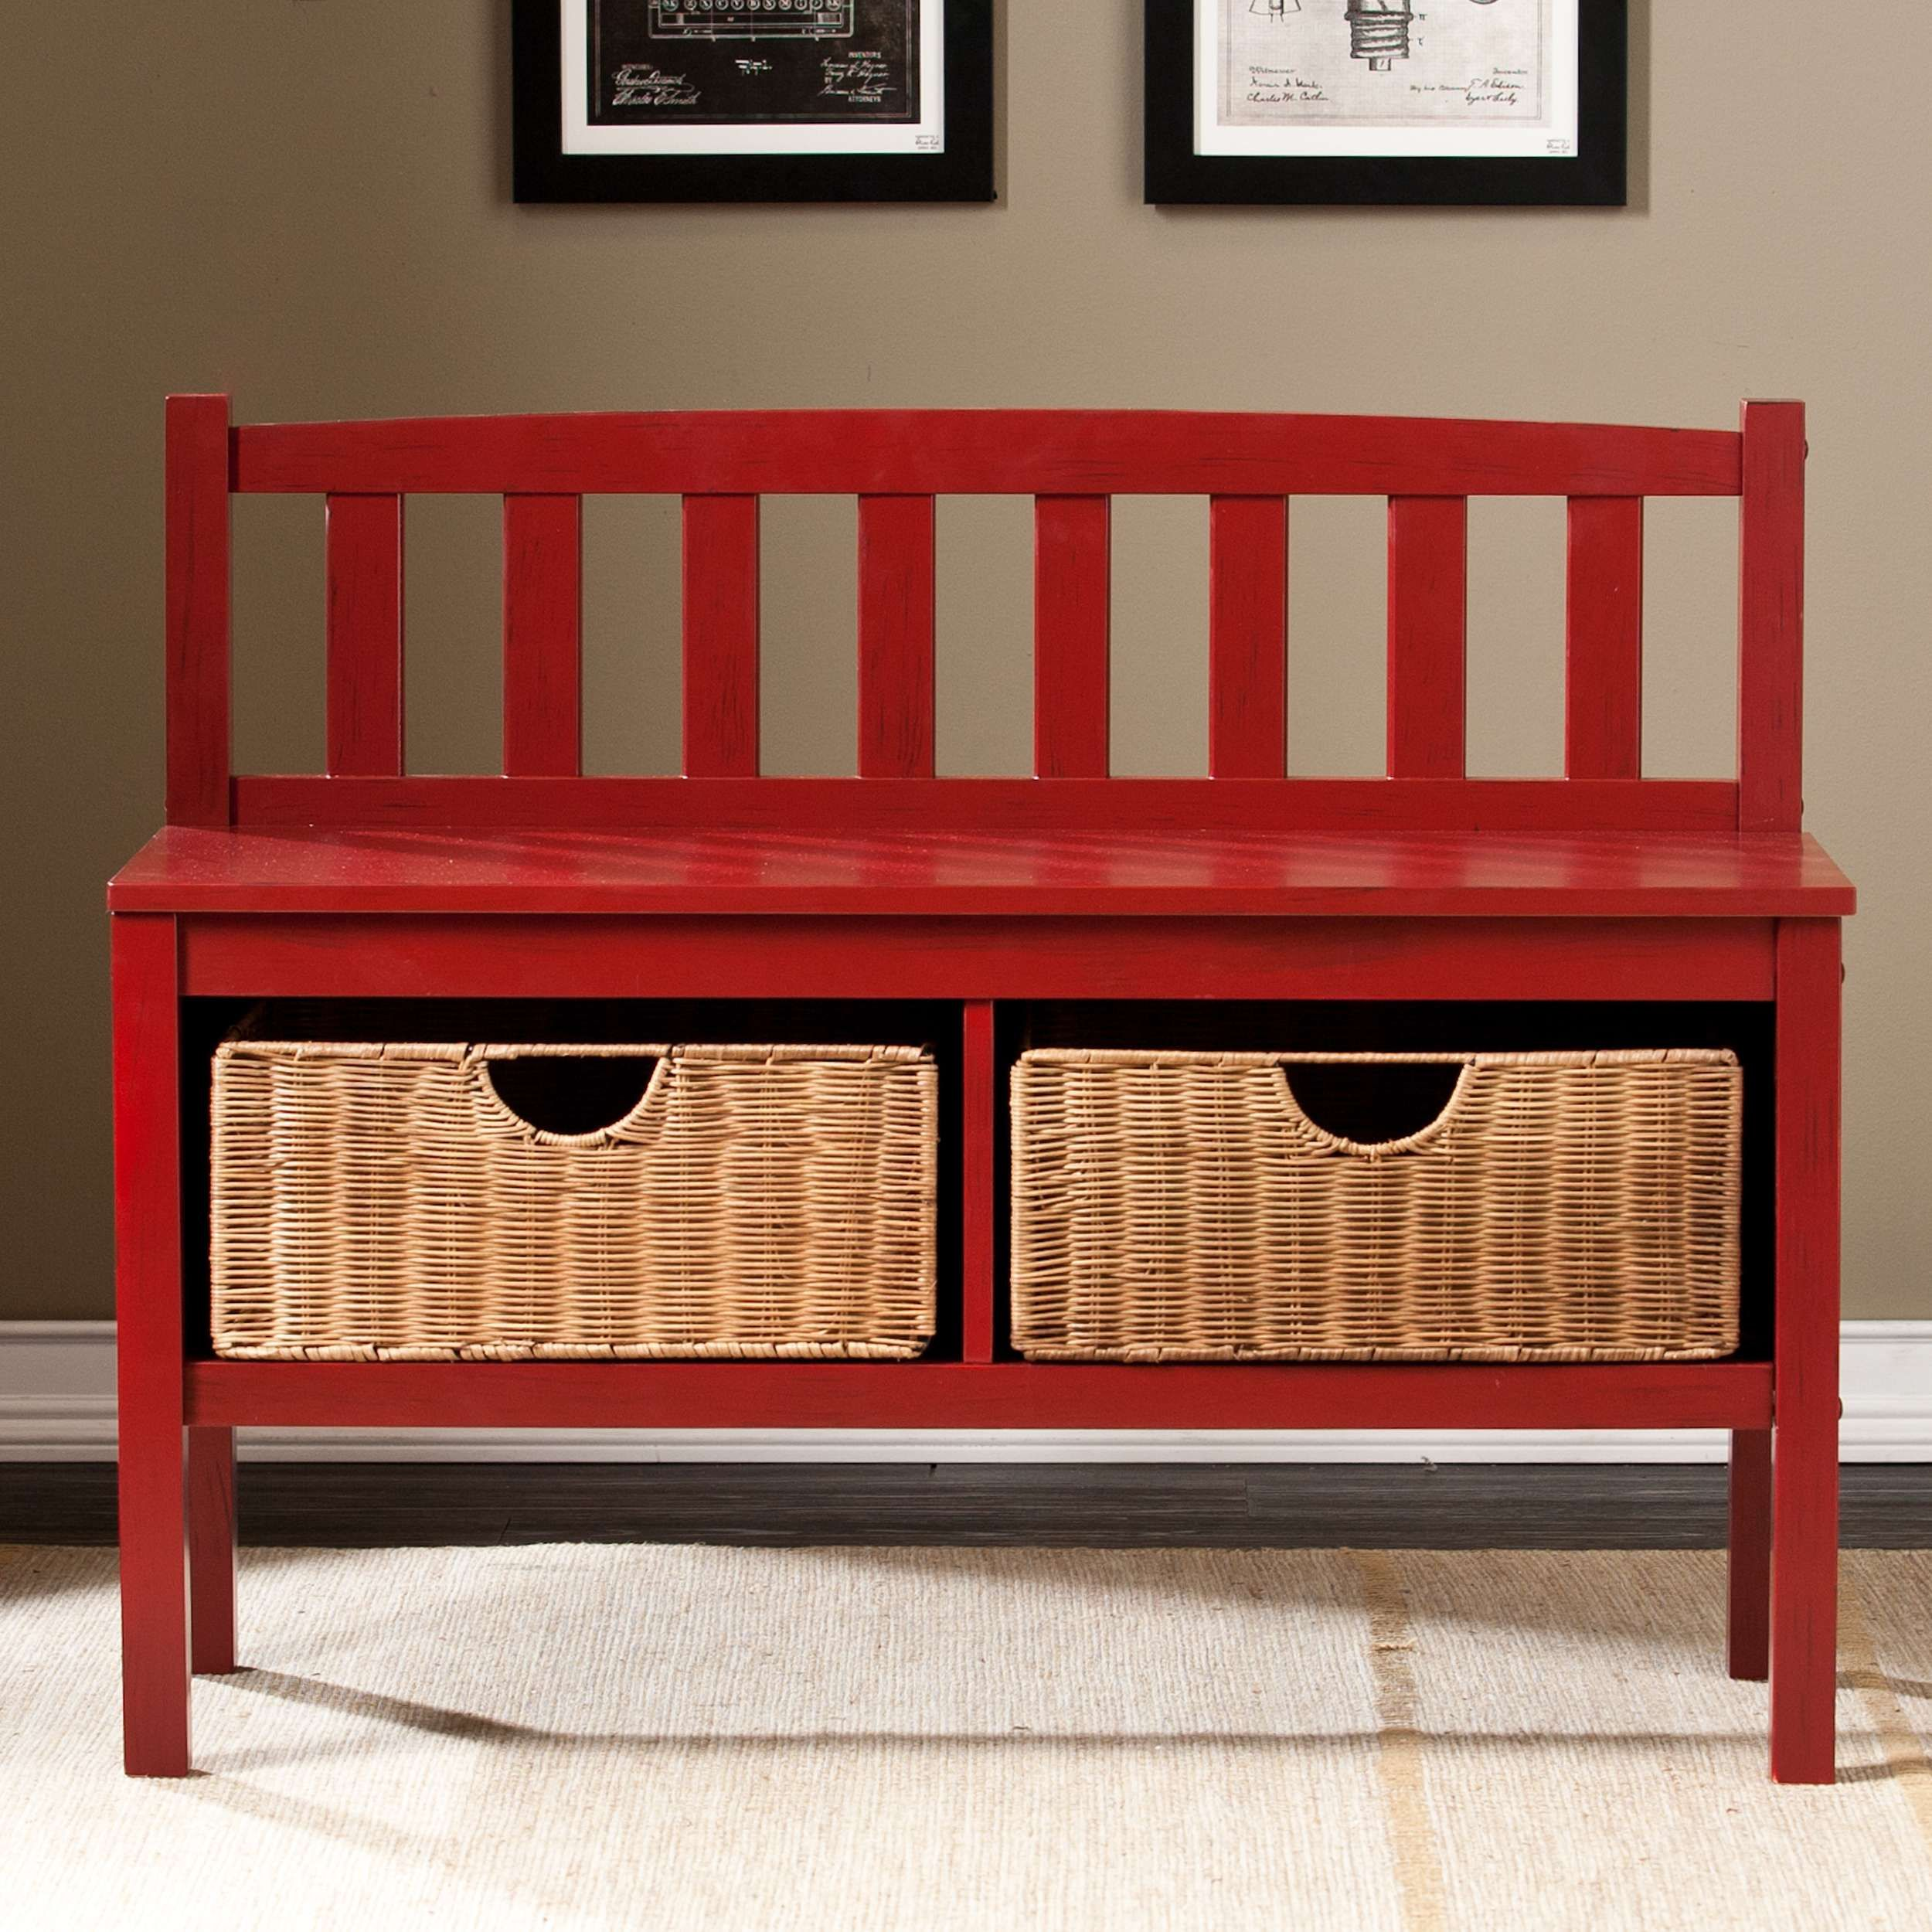 Lowest price on Southern Enterprises Red Bench with Storage Baskets